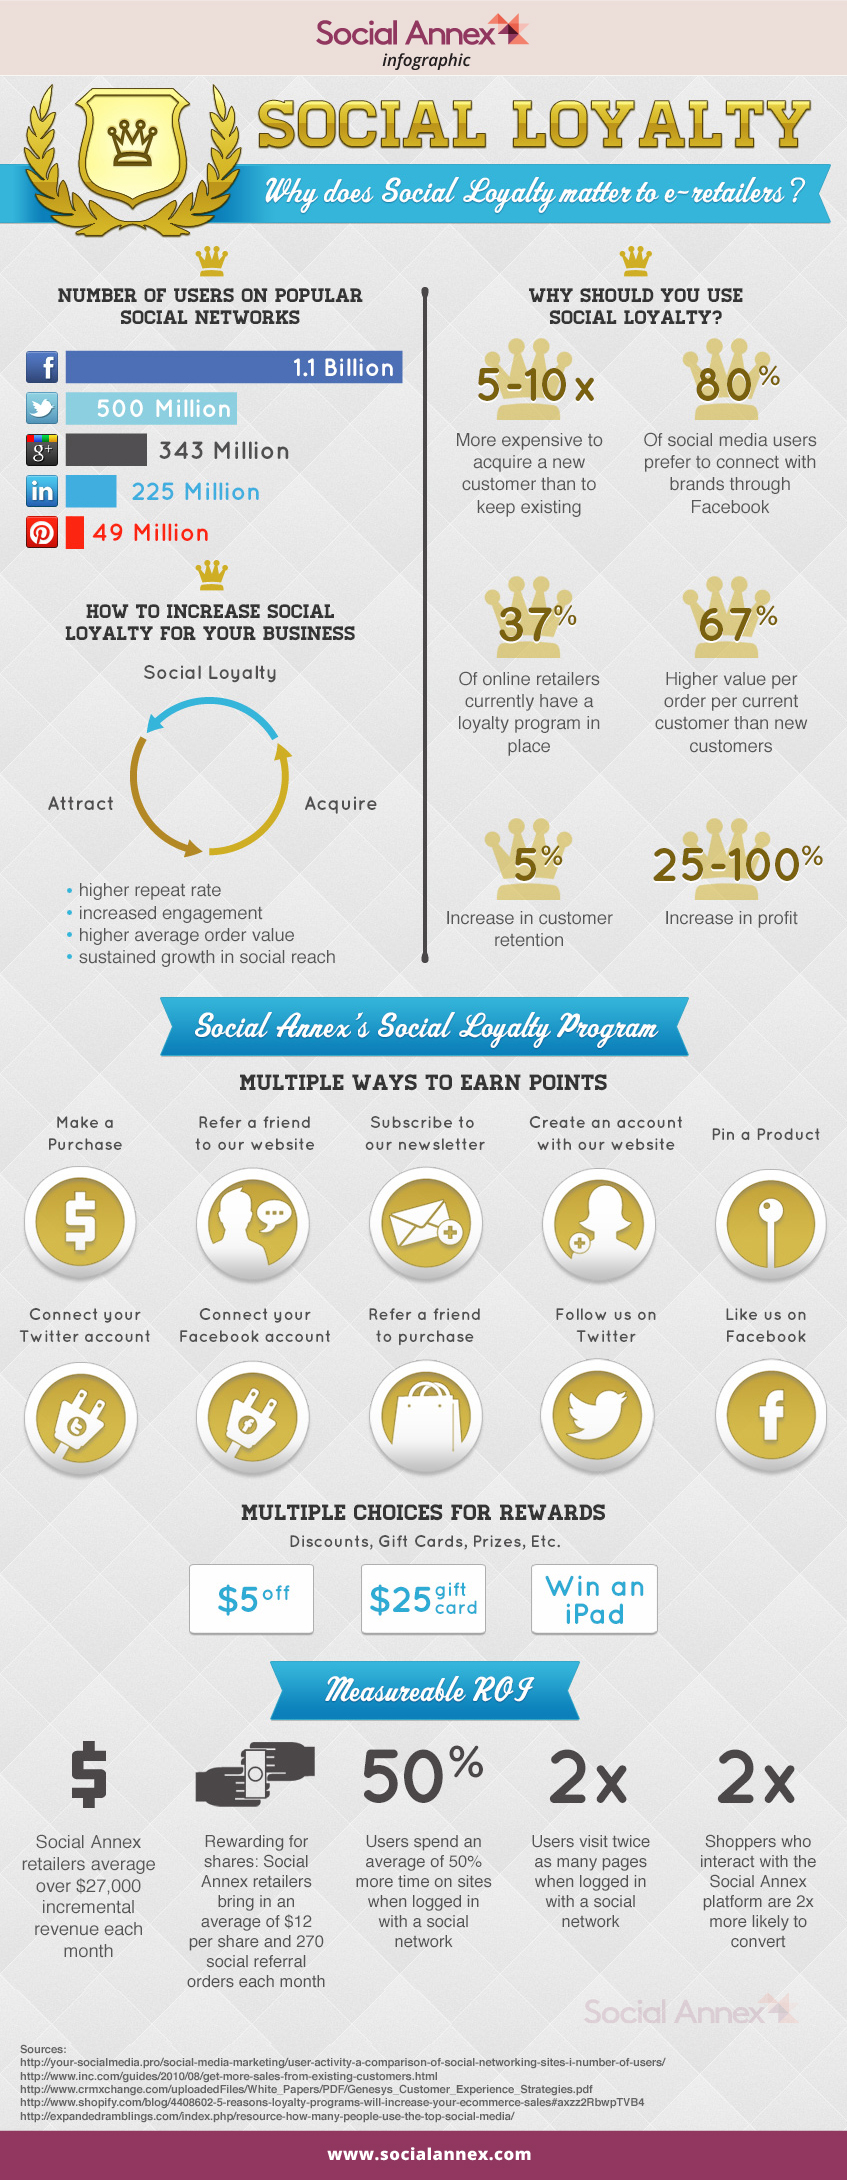 SOCIAL LOYALTY INFOGRAPHIC